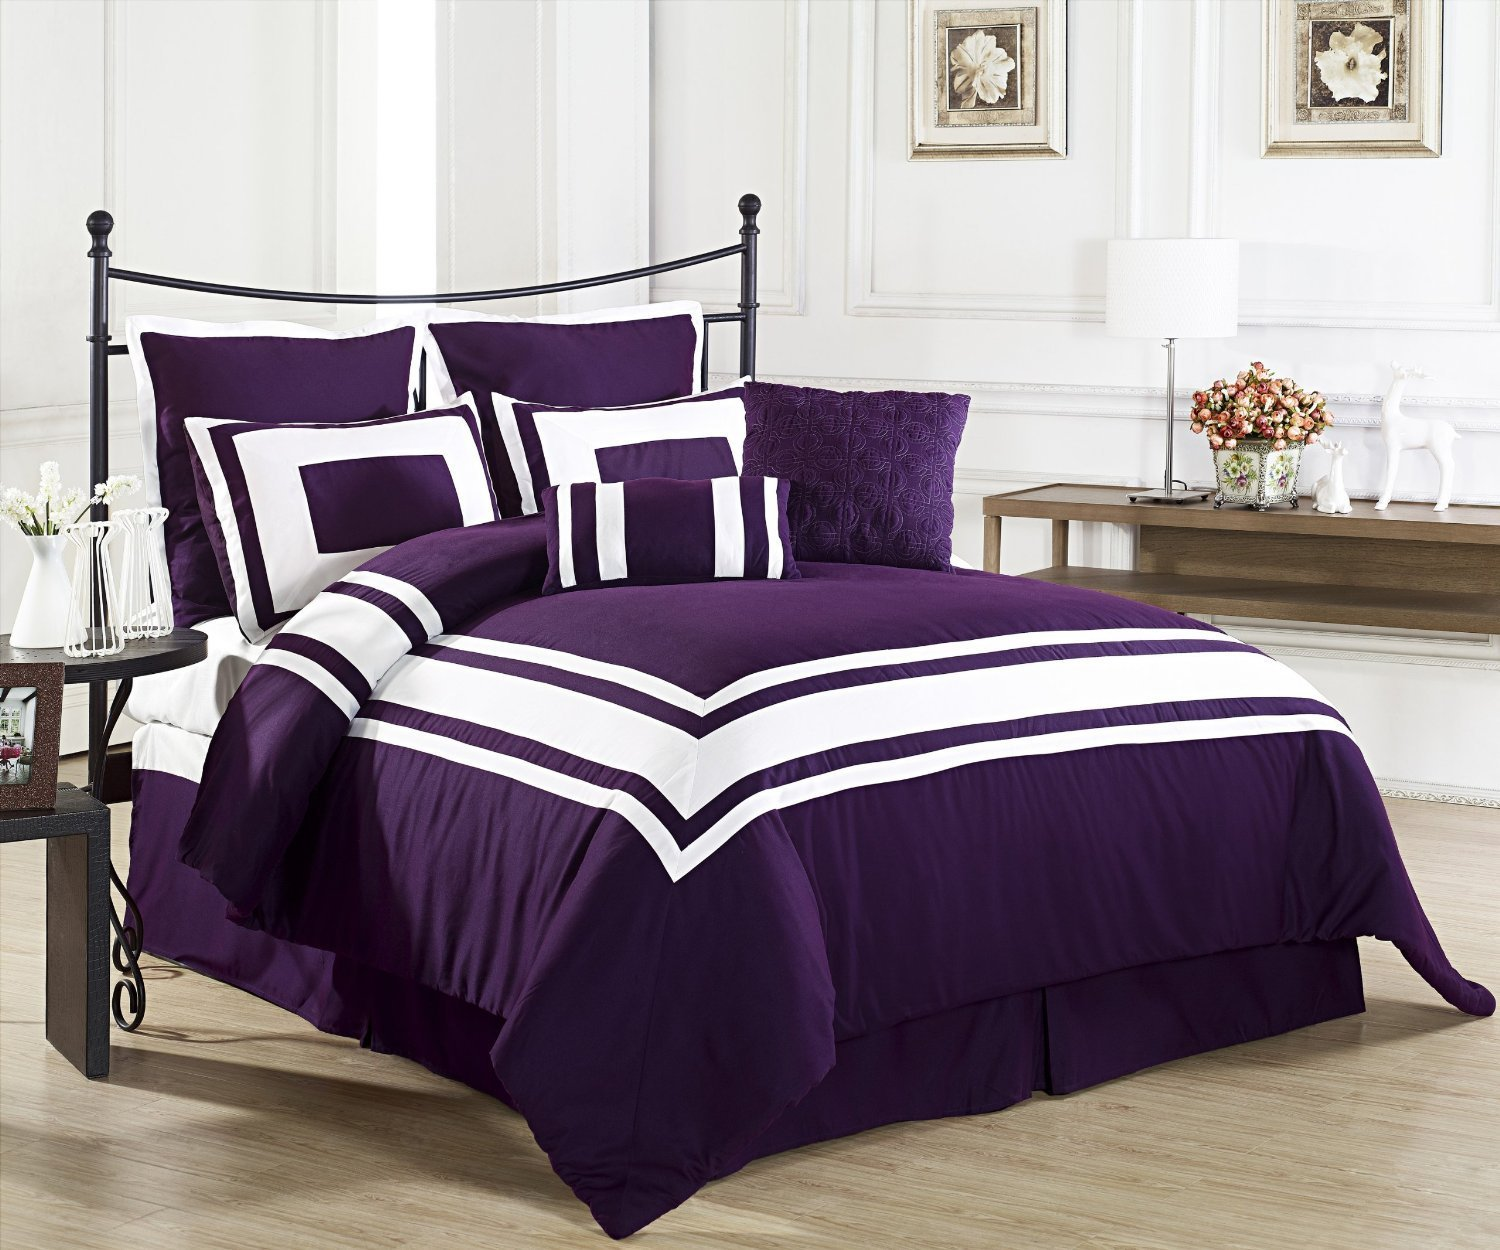 Best Purple Bedding Sets Perfect Tone For The Season Home Furniture Design With Pictures